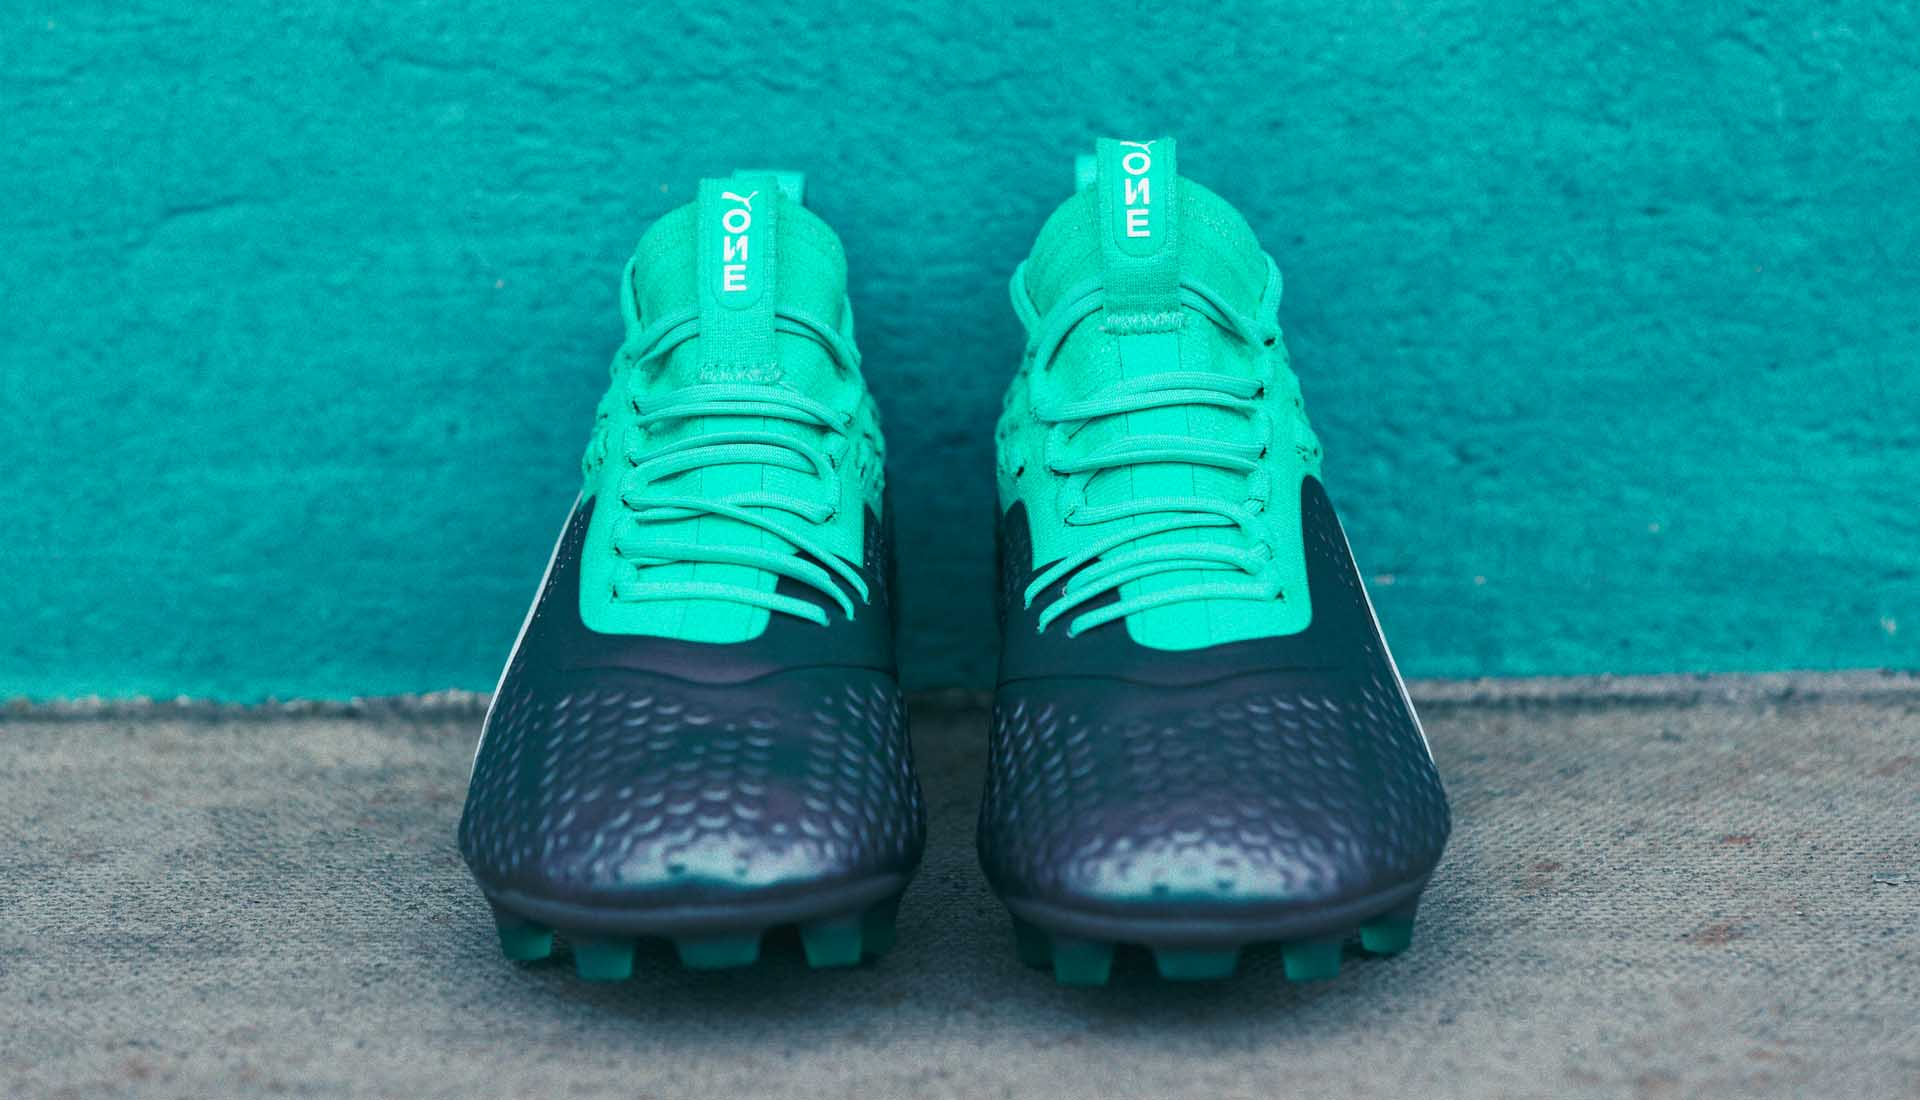 3-puma-one-world-cup-2018-boots.jpg